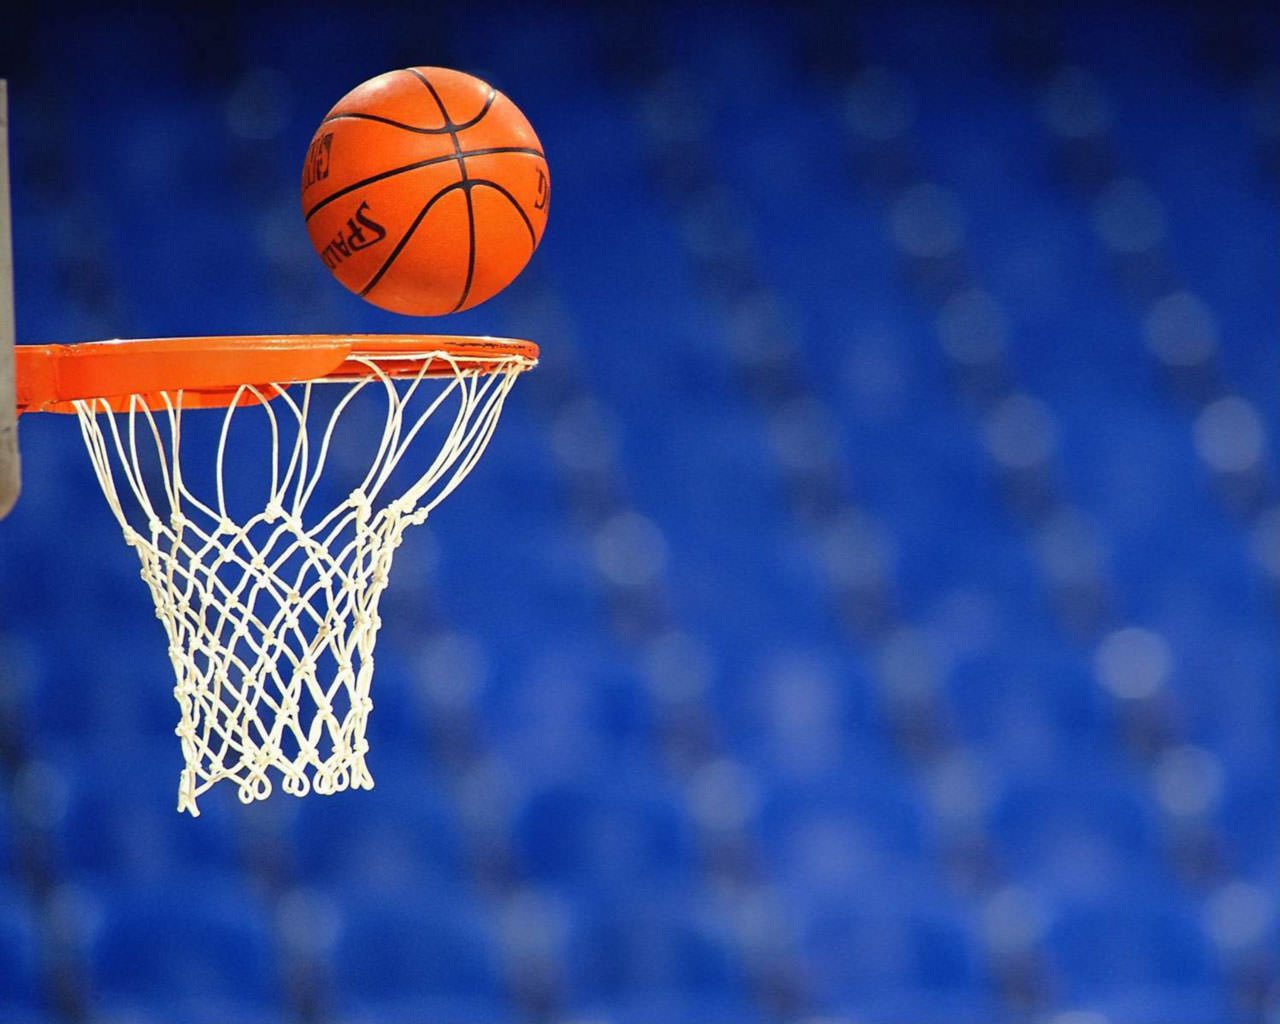 basketball background image